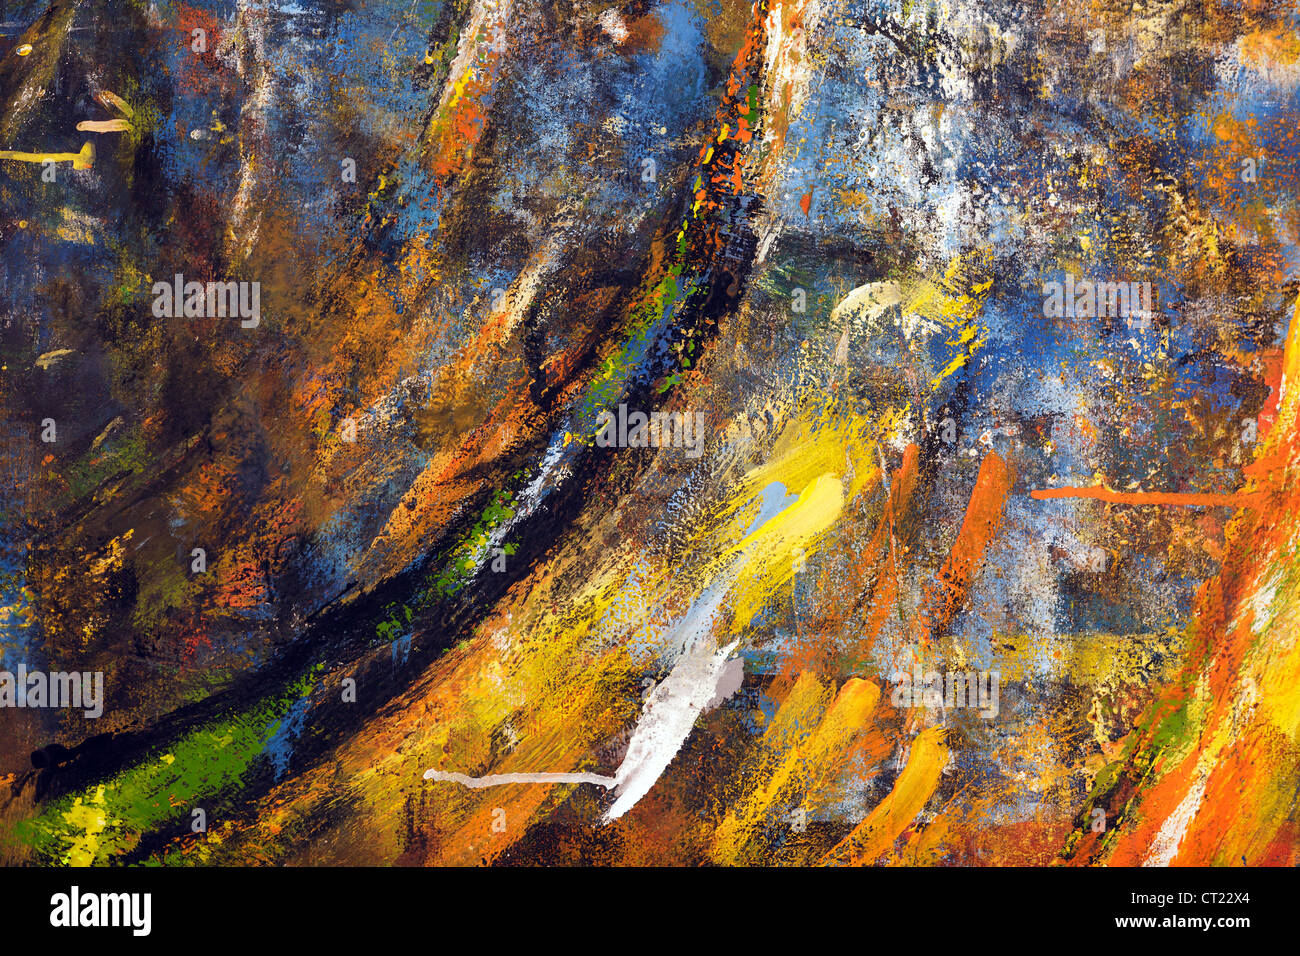 abstract splash of paintings on flat surface Stock Photo